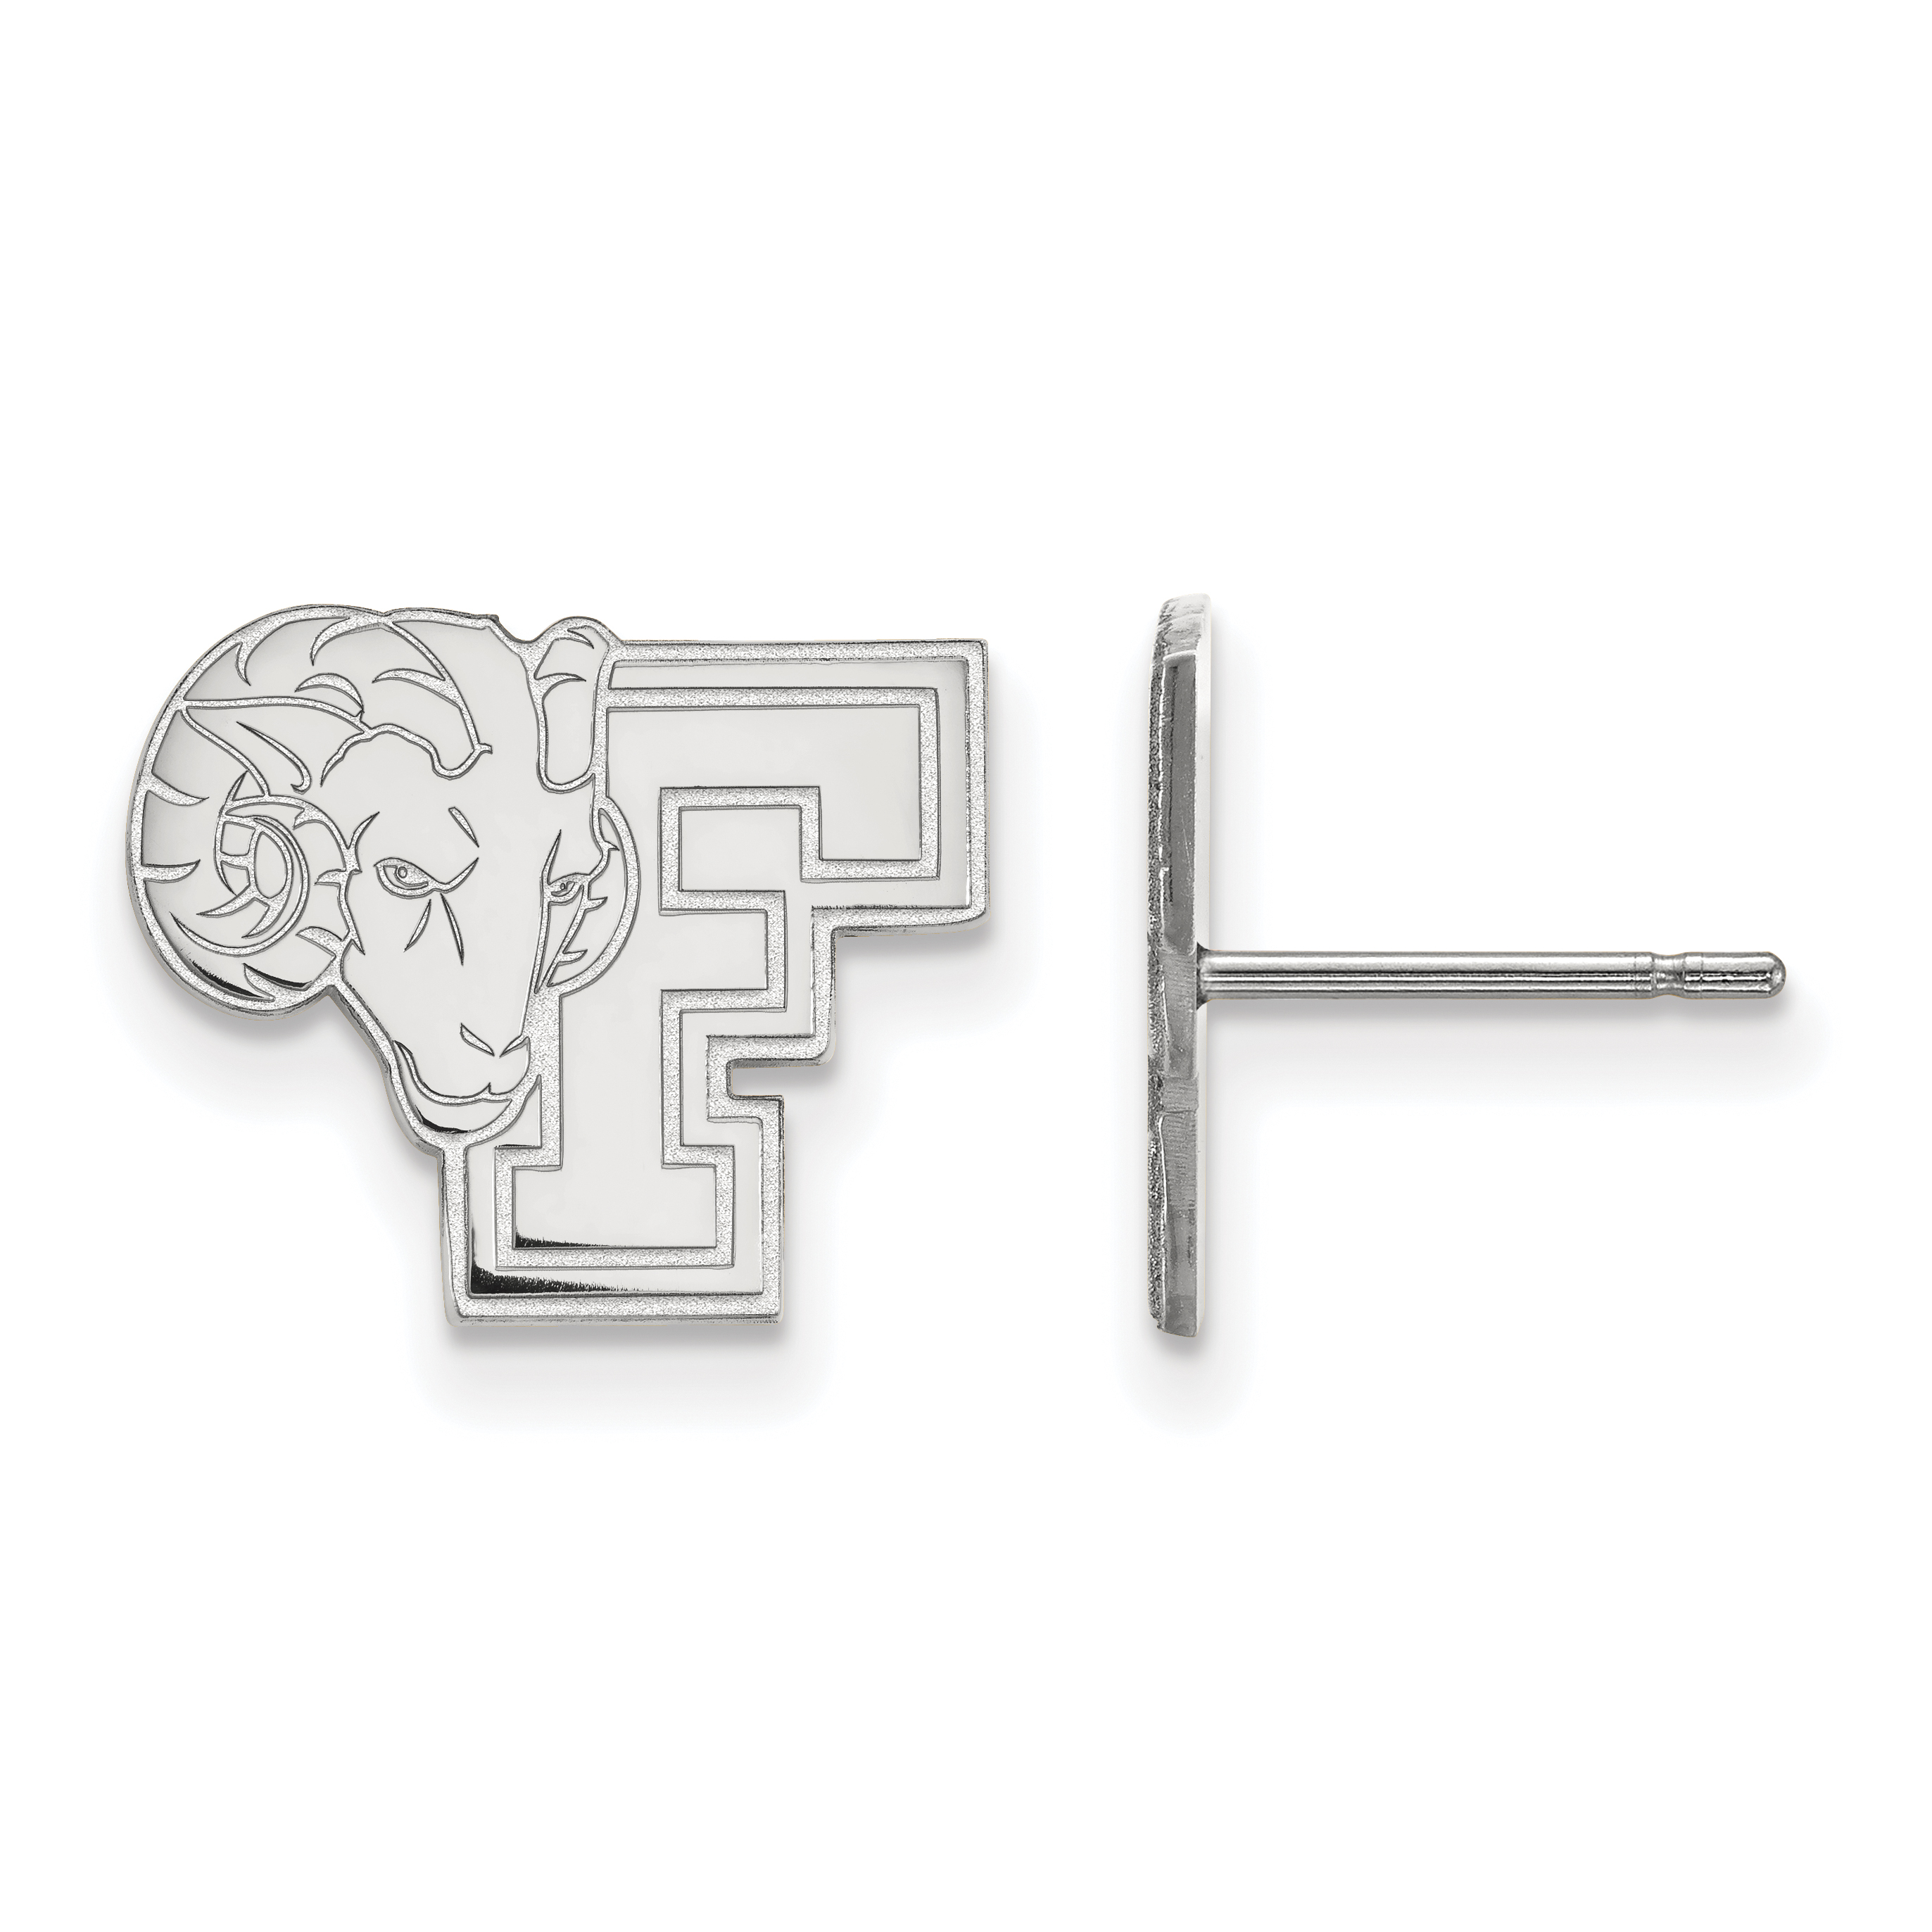 10kw Fordham University Small Post Earrings. weight: 2, Lengh: 11mm